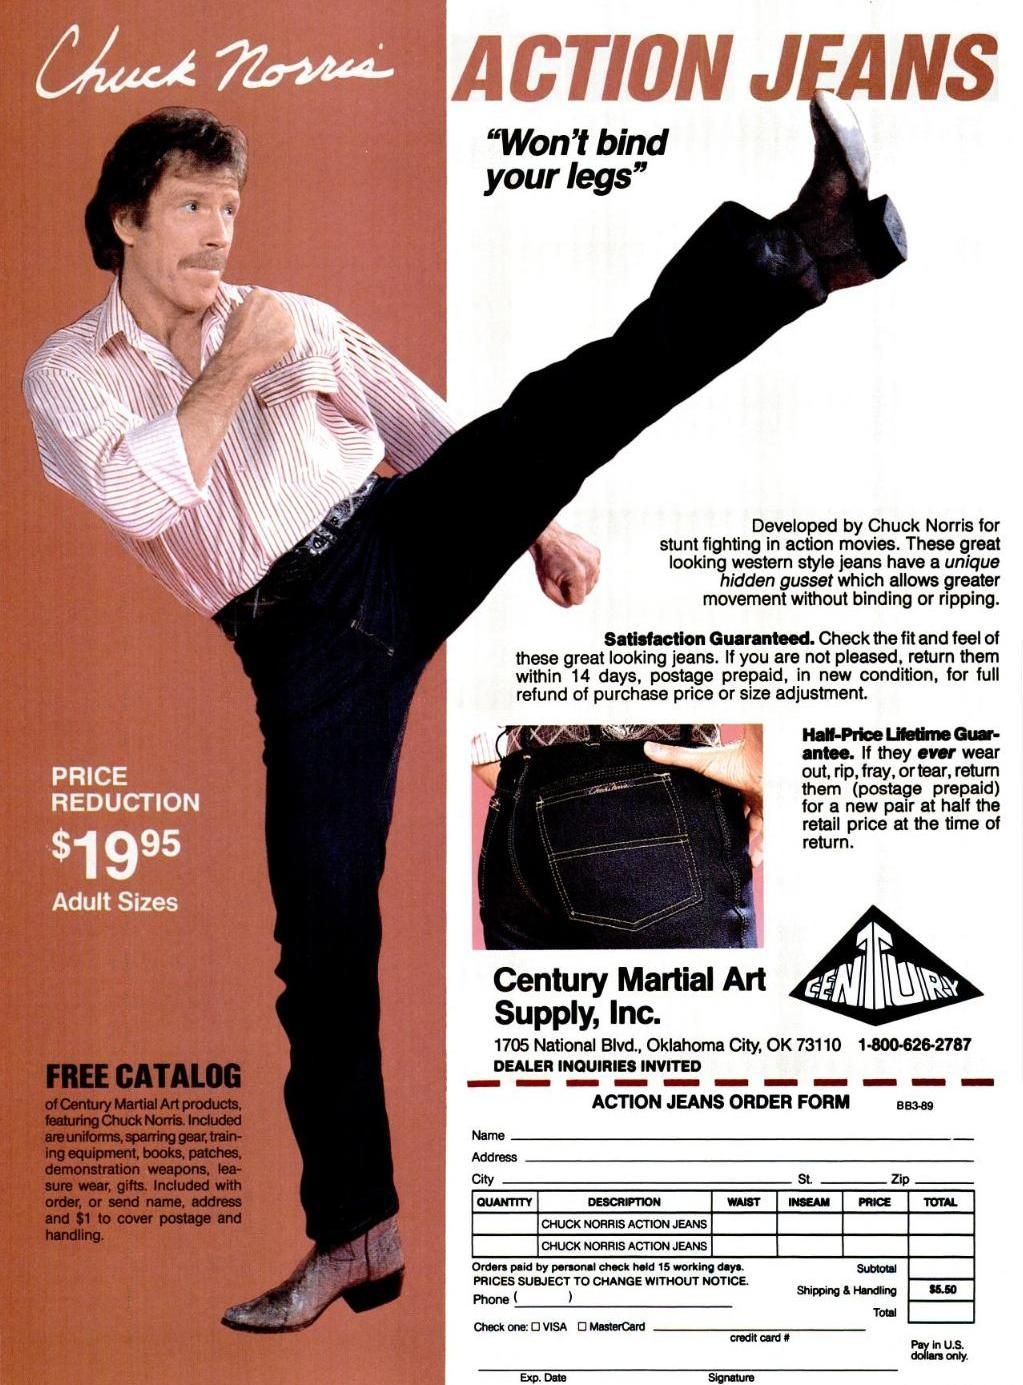 7. Chuck Norris Had His Own Line of Jeans